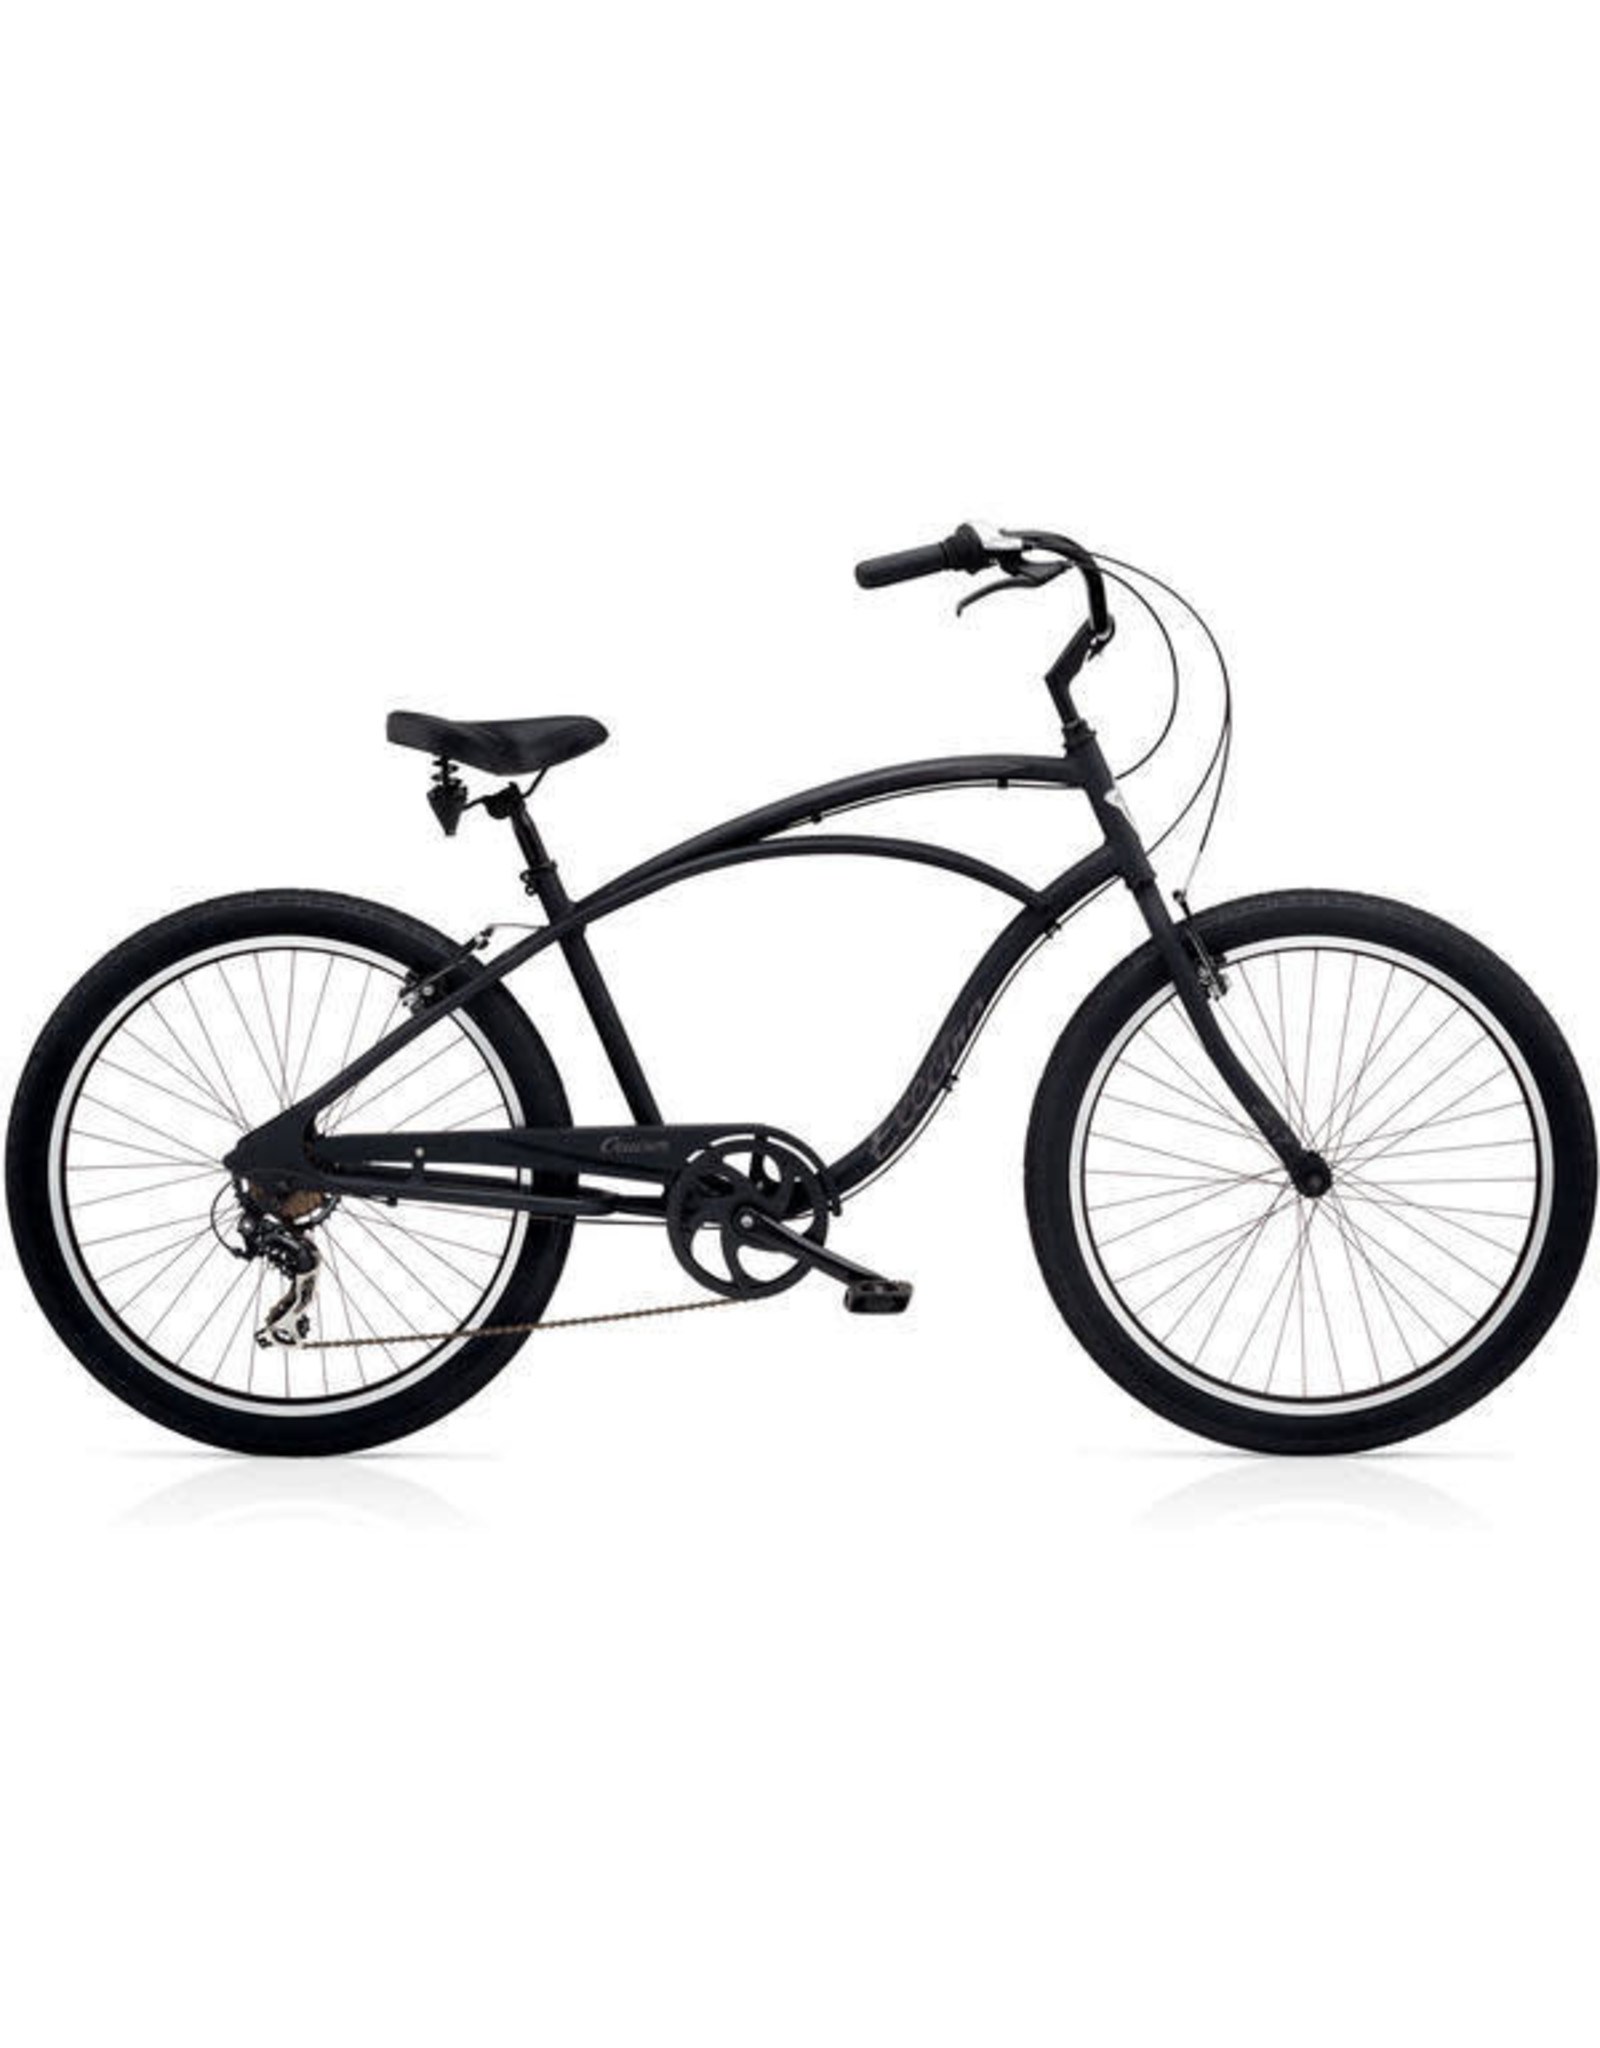 Electra Electra Cruiser Lux 7D Step-Over